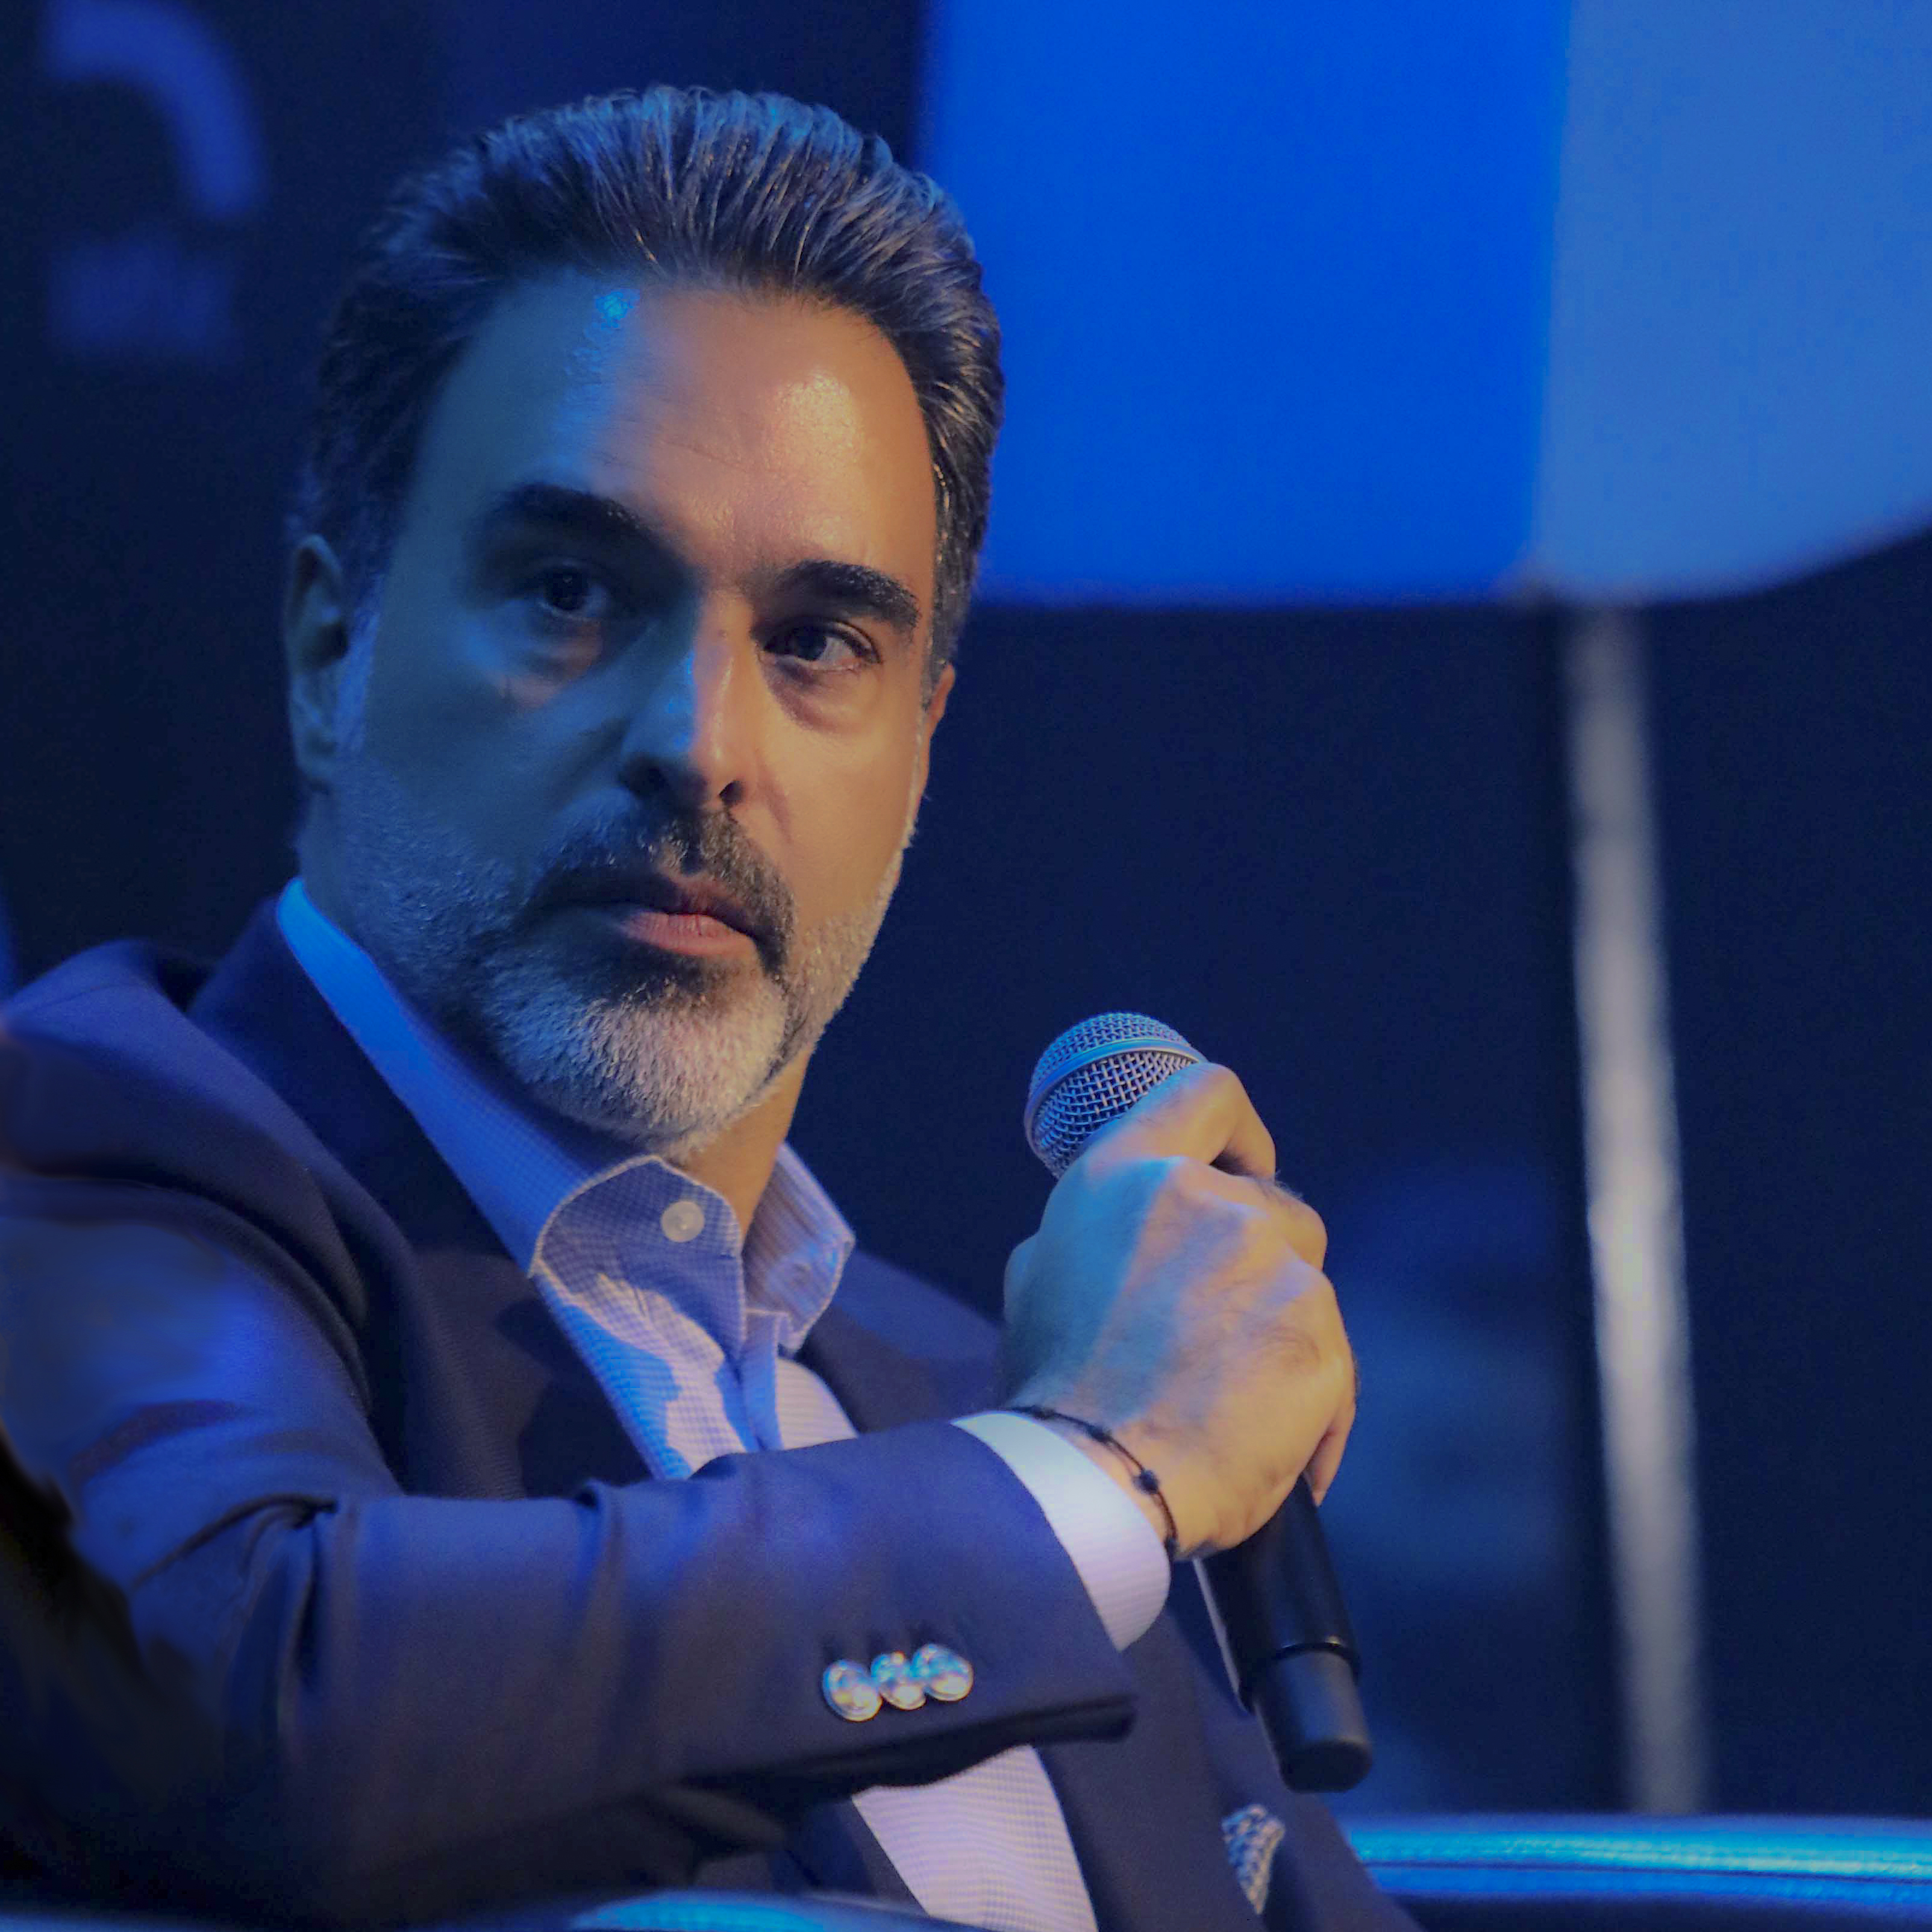 mazen-hayek-leaves-mbc-group-to-pursue-new-opportunities